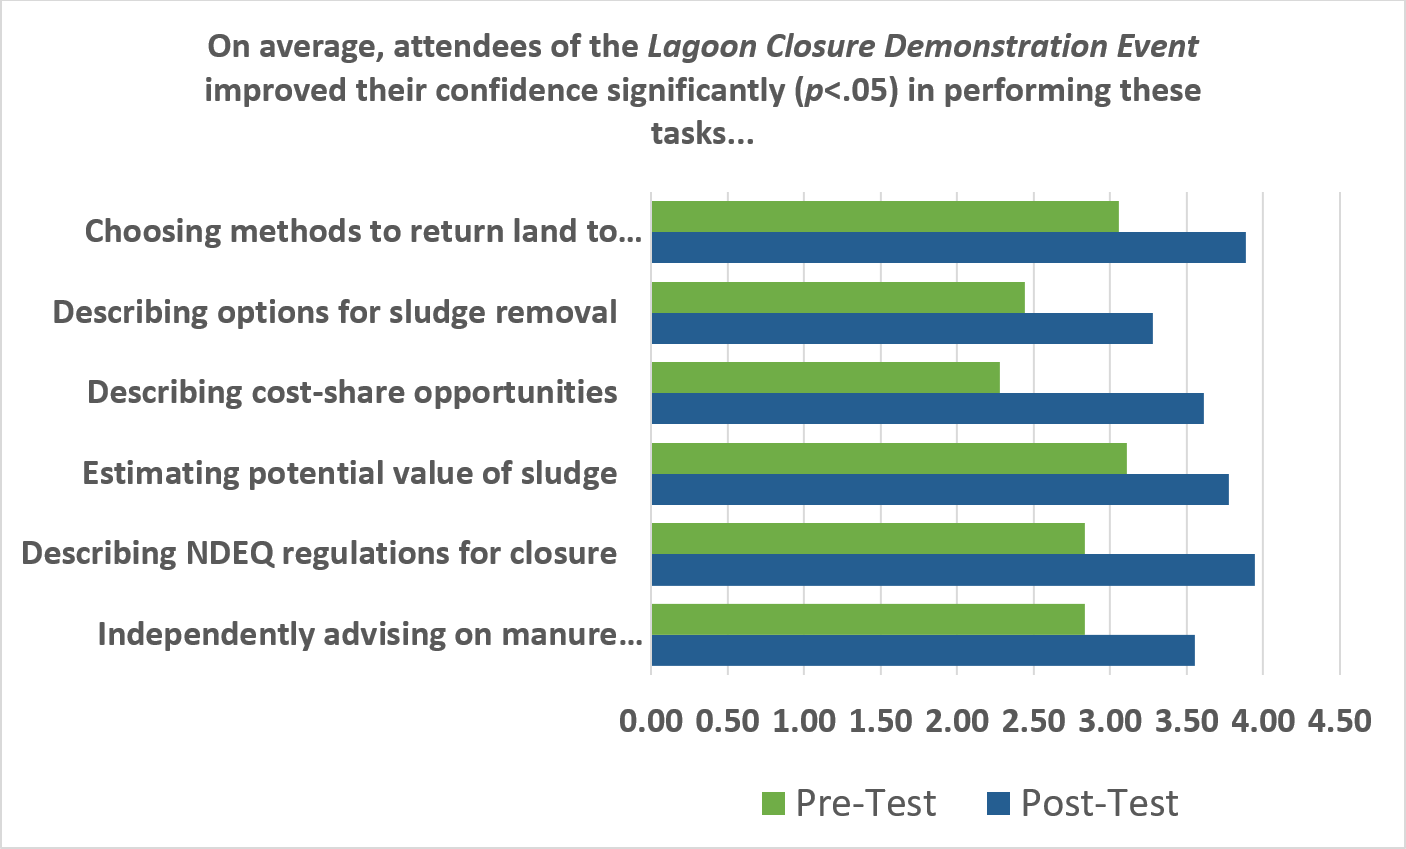 Figure 4. Impacts of the lagoon closure demonstration event